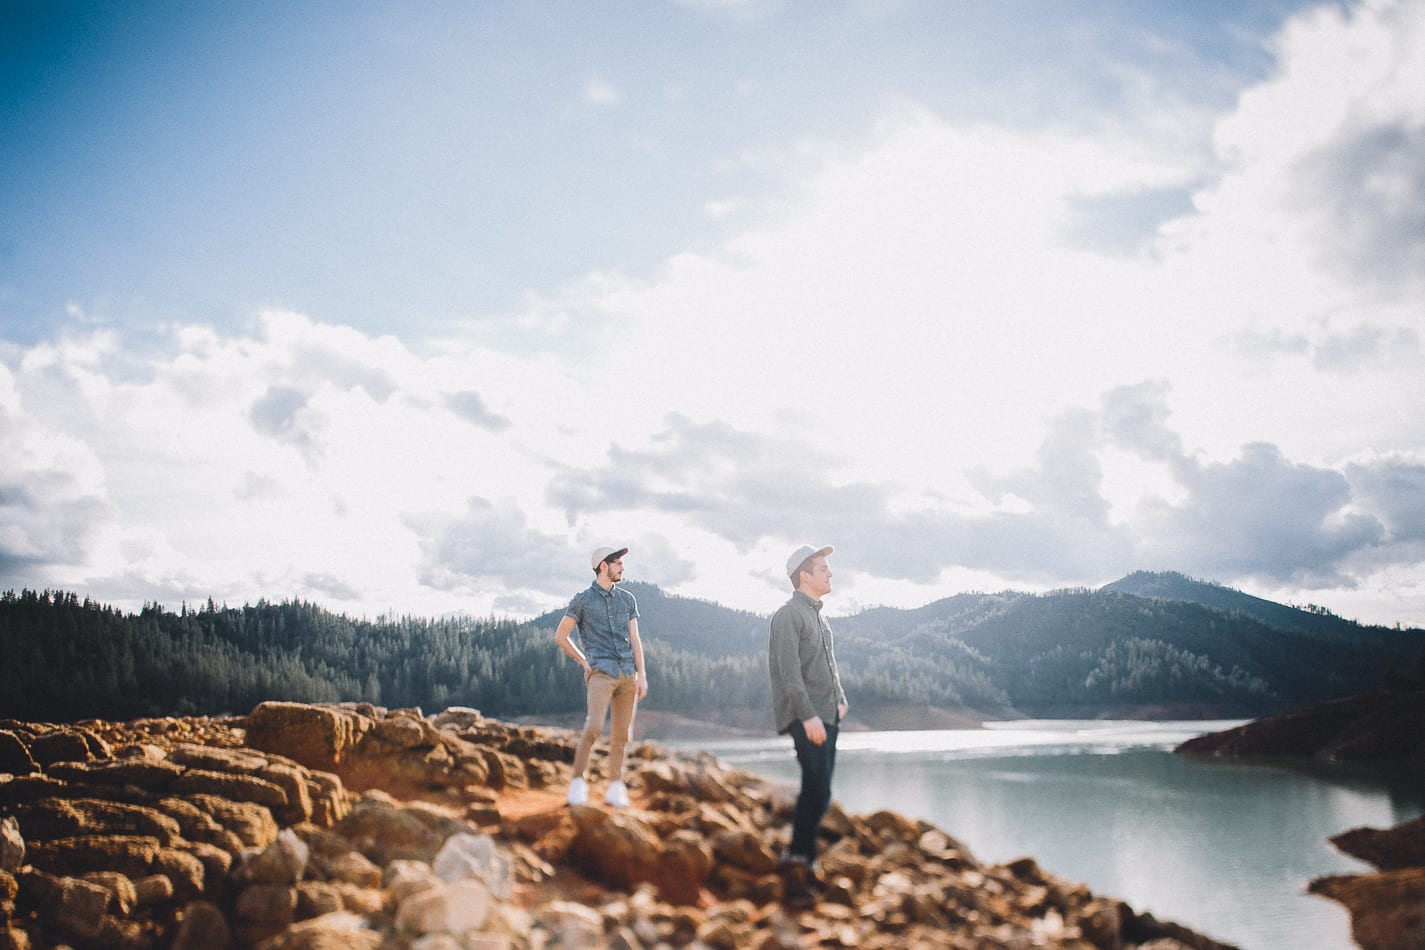 shasta-lake-portrait-lifestyle-photo-5